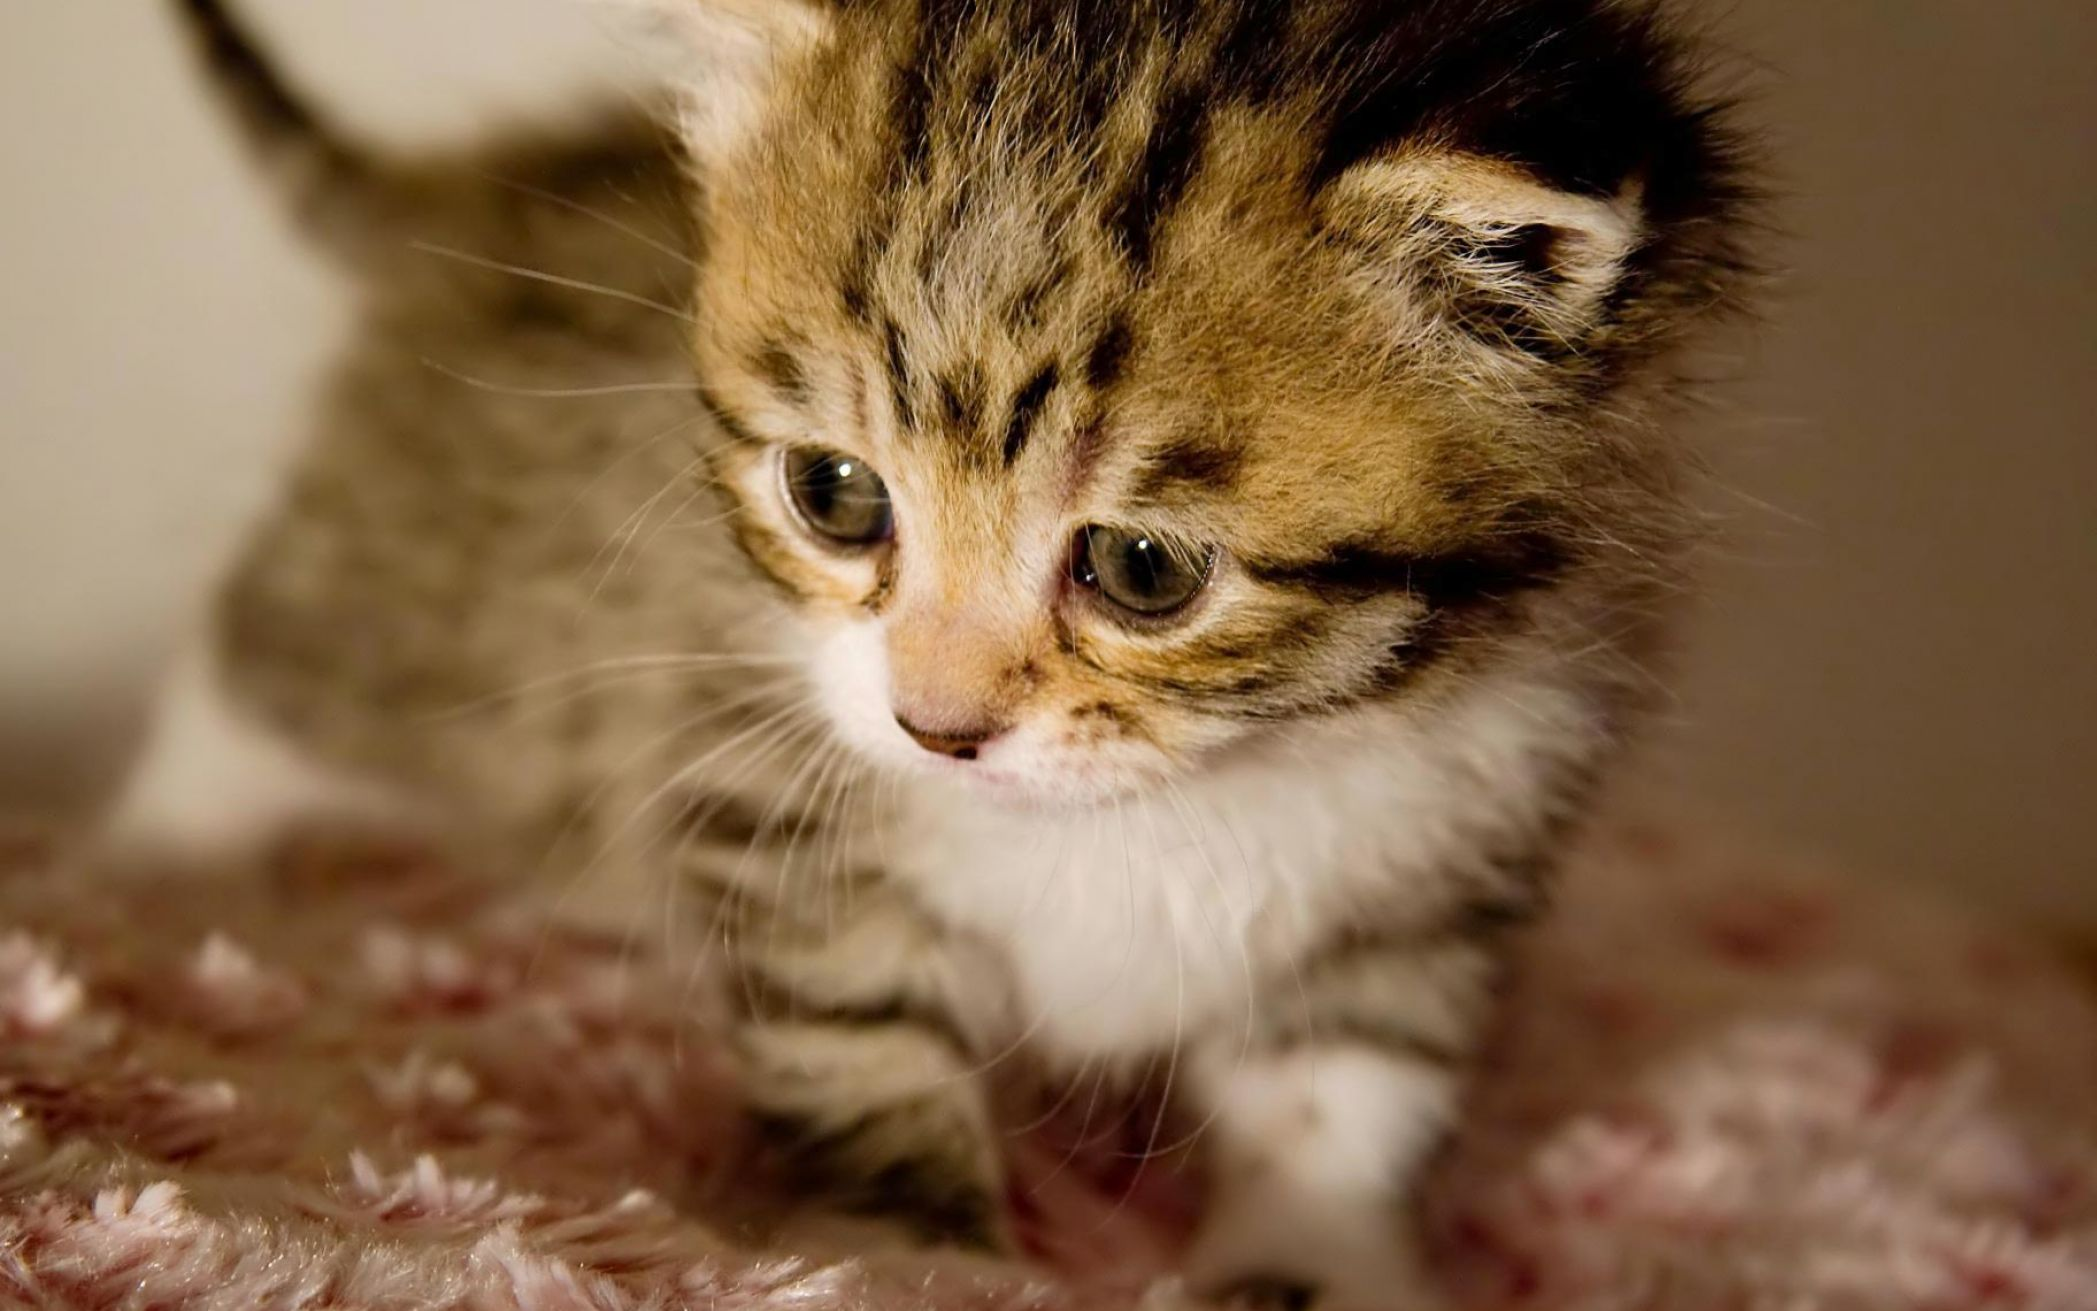 Cute baby kittens wallpapers pictures 2